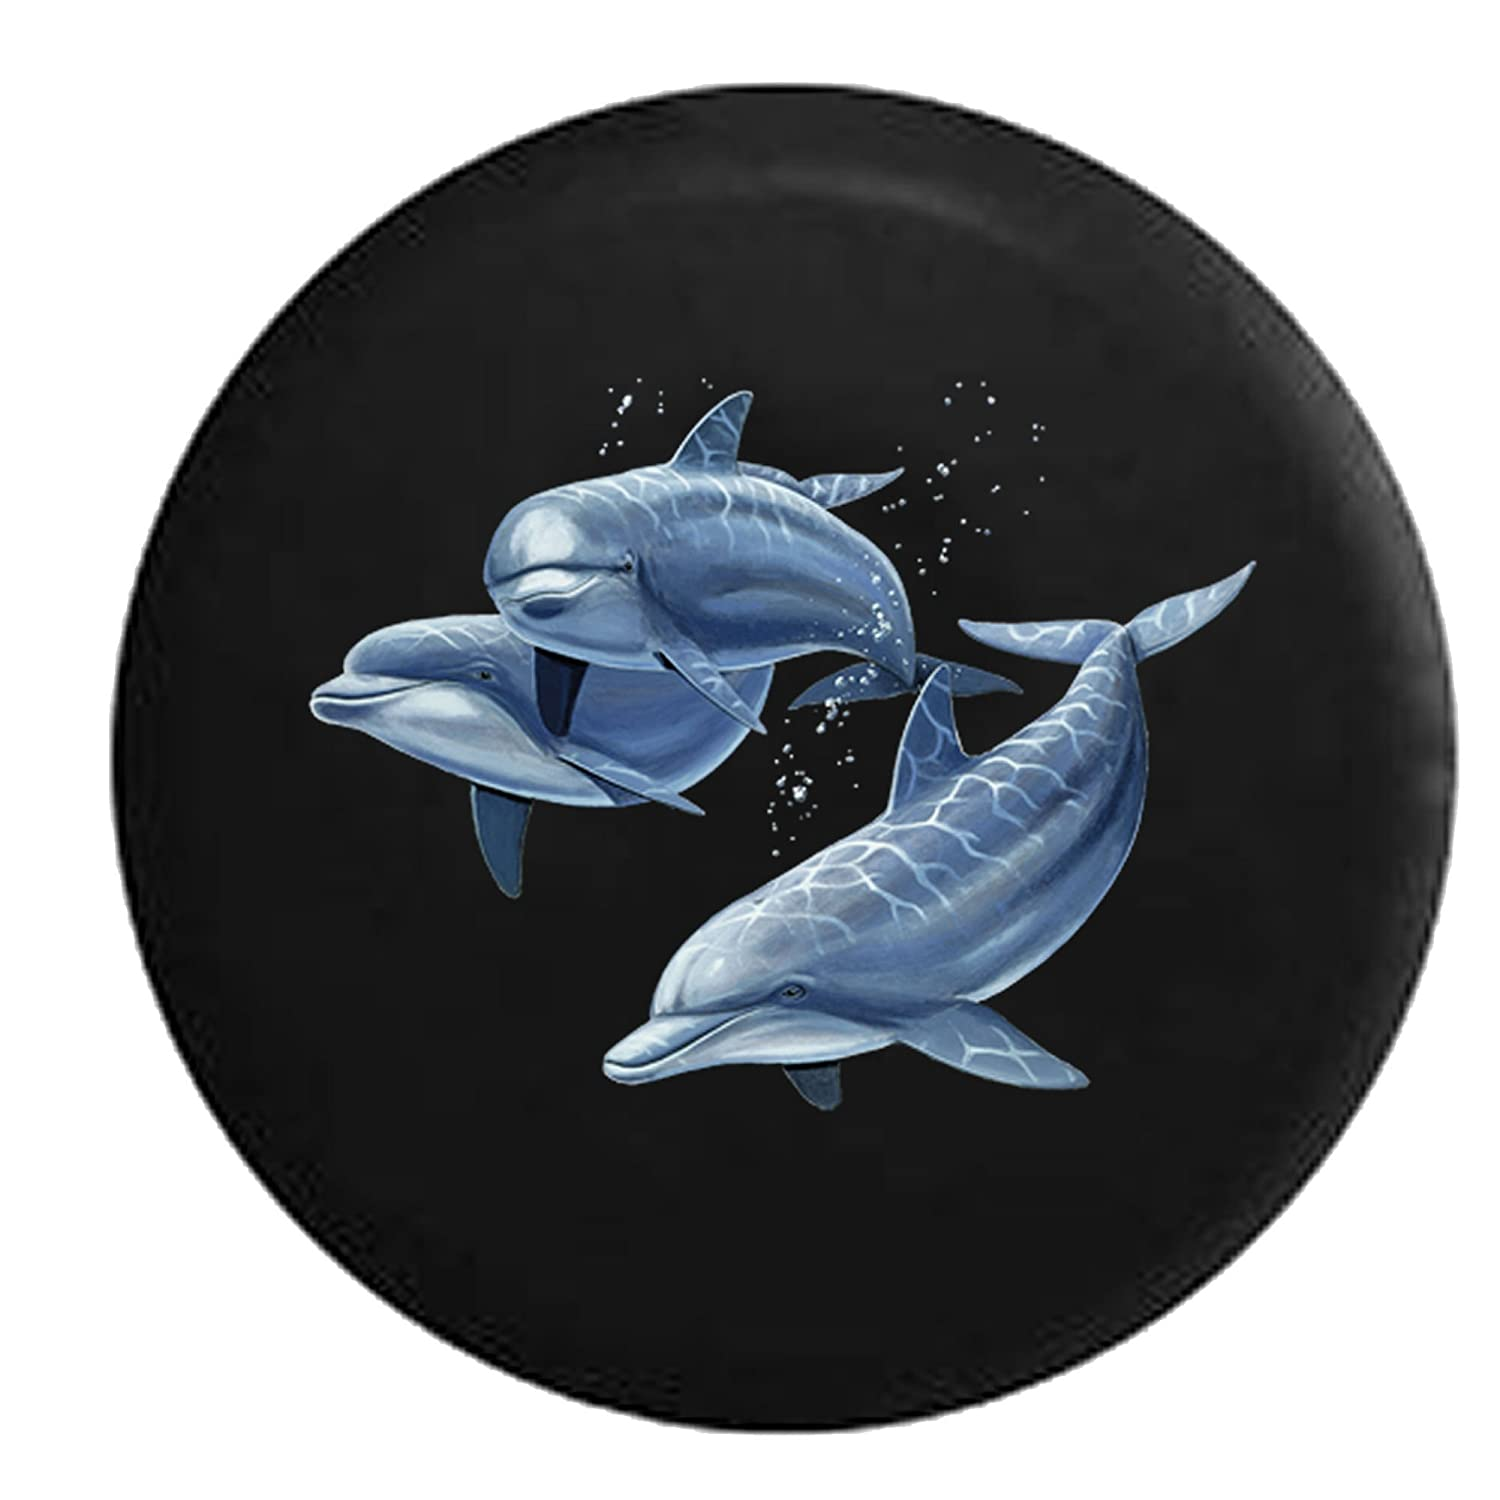 Family of Dolphins in the Ocean Sea Light Spare Tire Cover Black 26-27.5 in American Unlimited